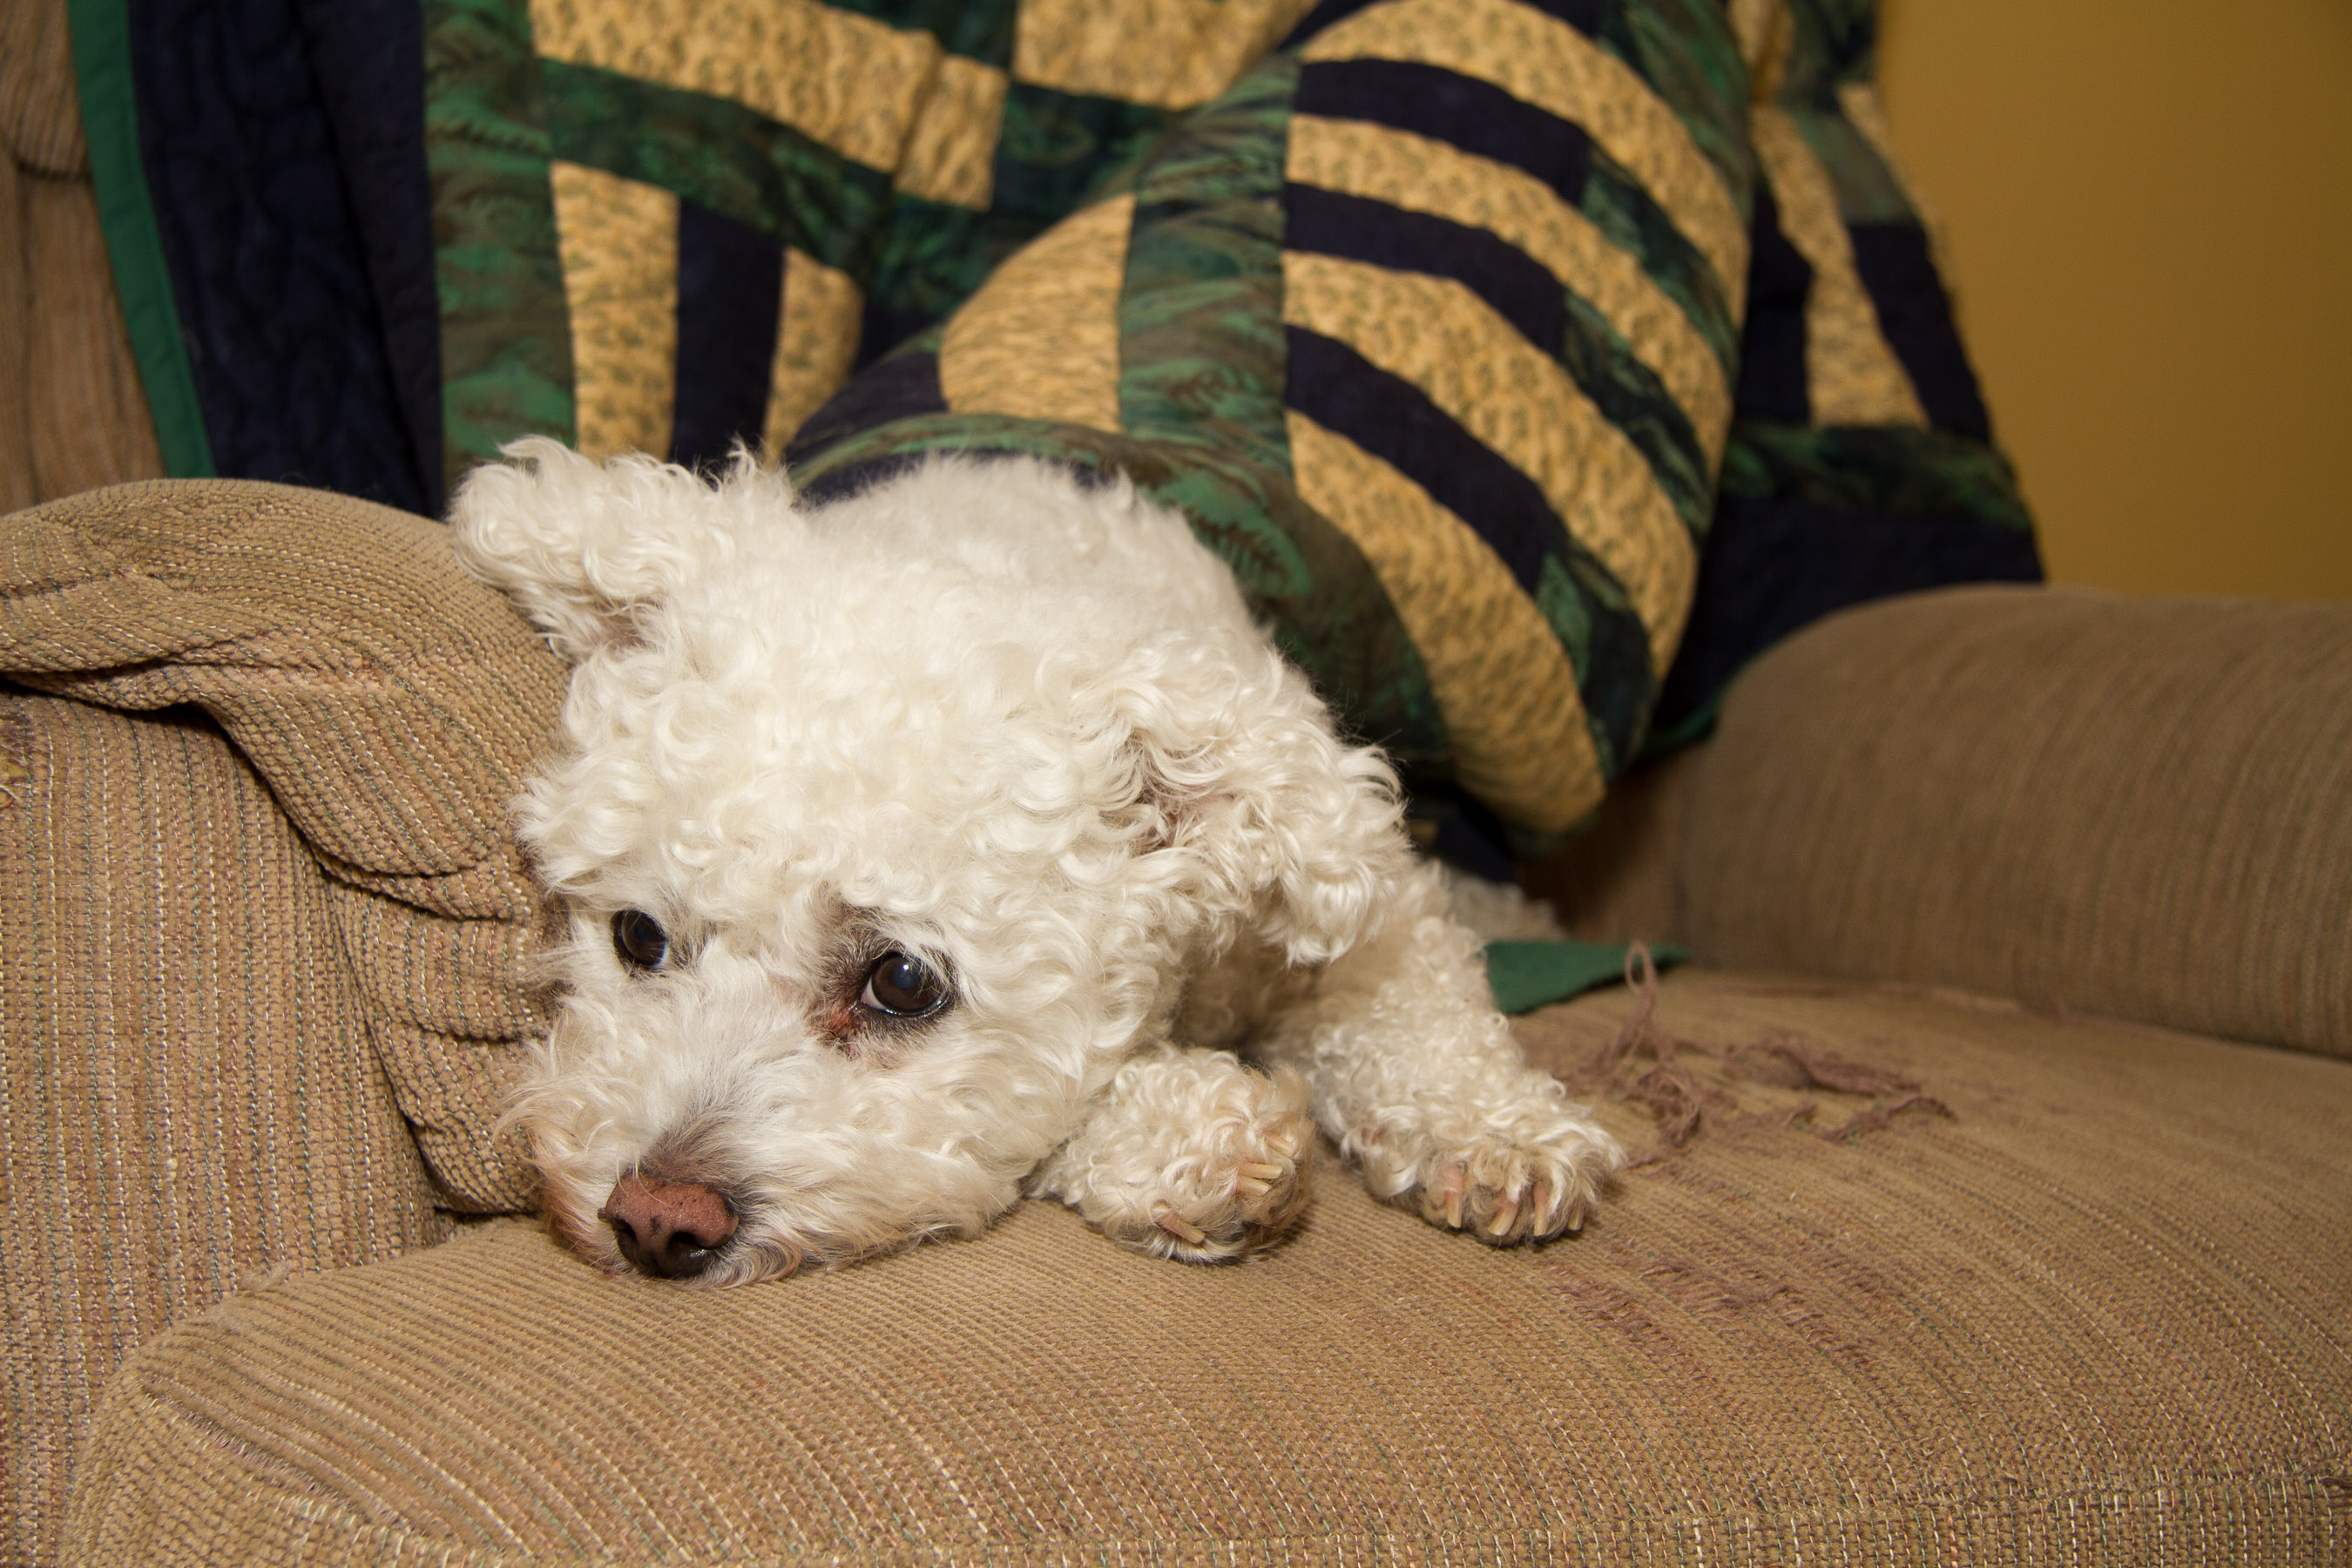 Animals, Bichon Frise, Dog, Pet, Wildlife, Yuki, yukes